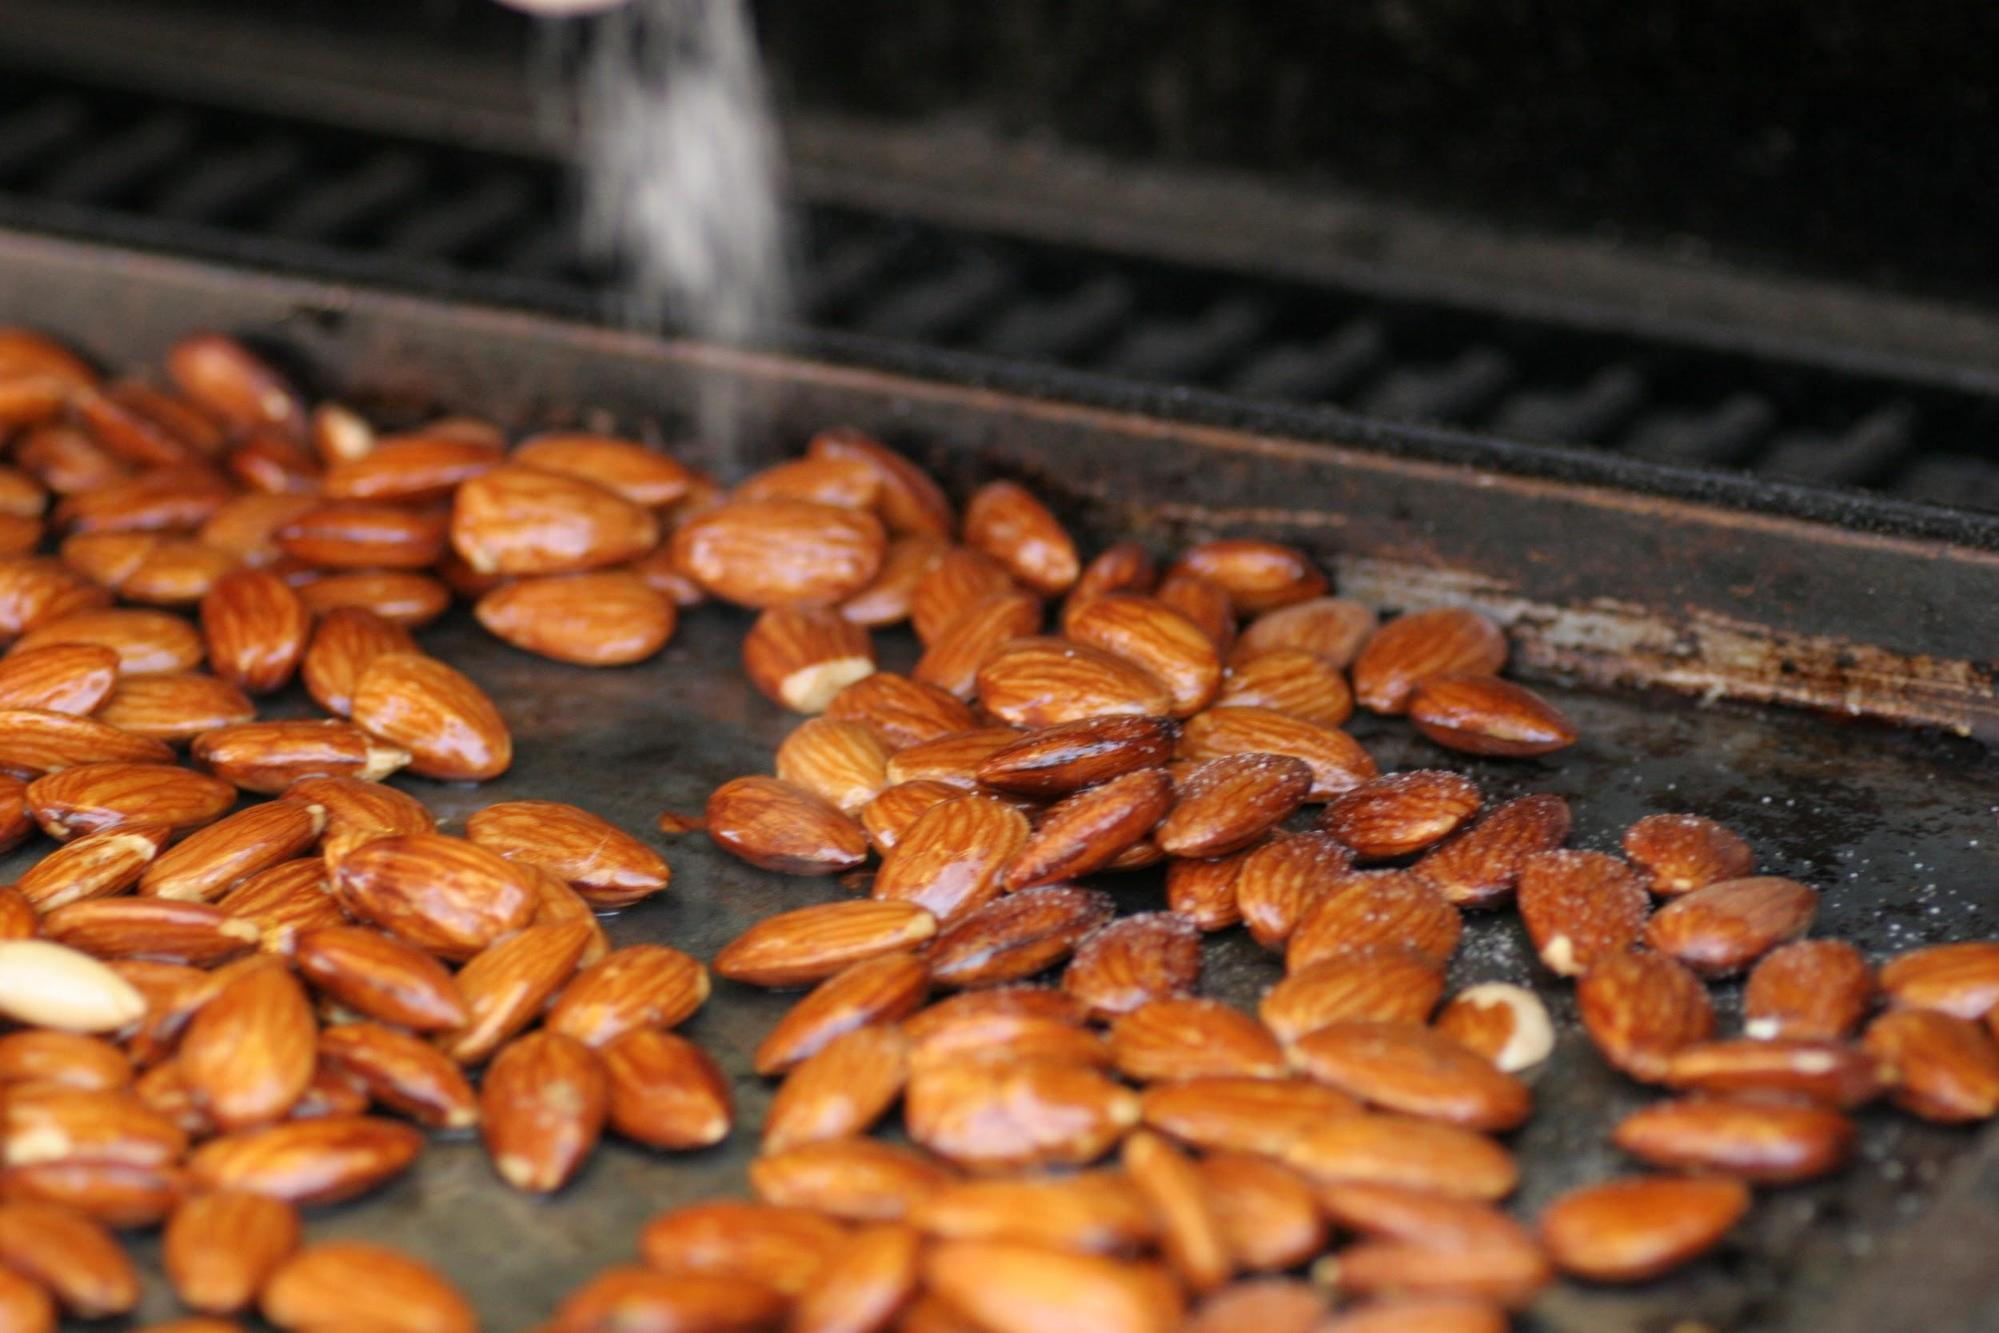 Smoked Seasoned Almonds On Pellet Grill